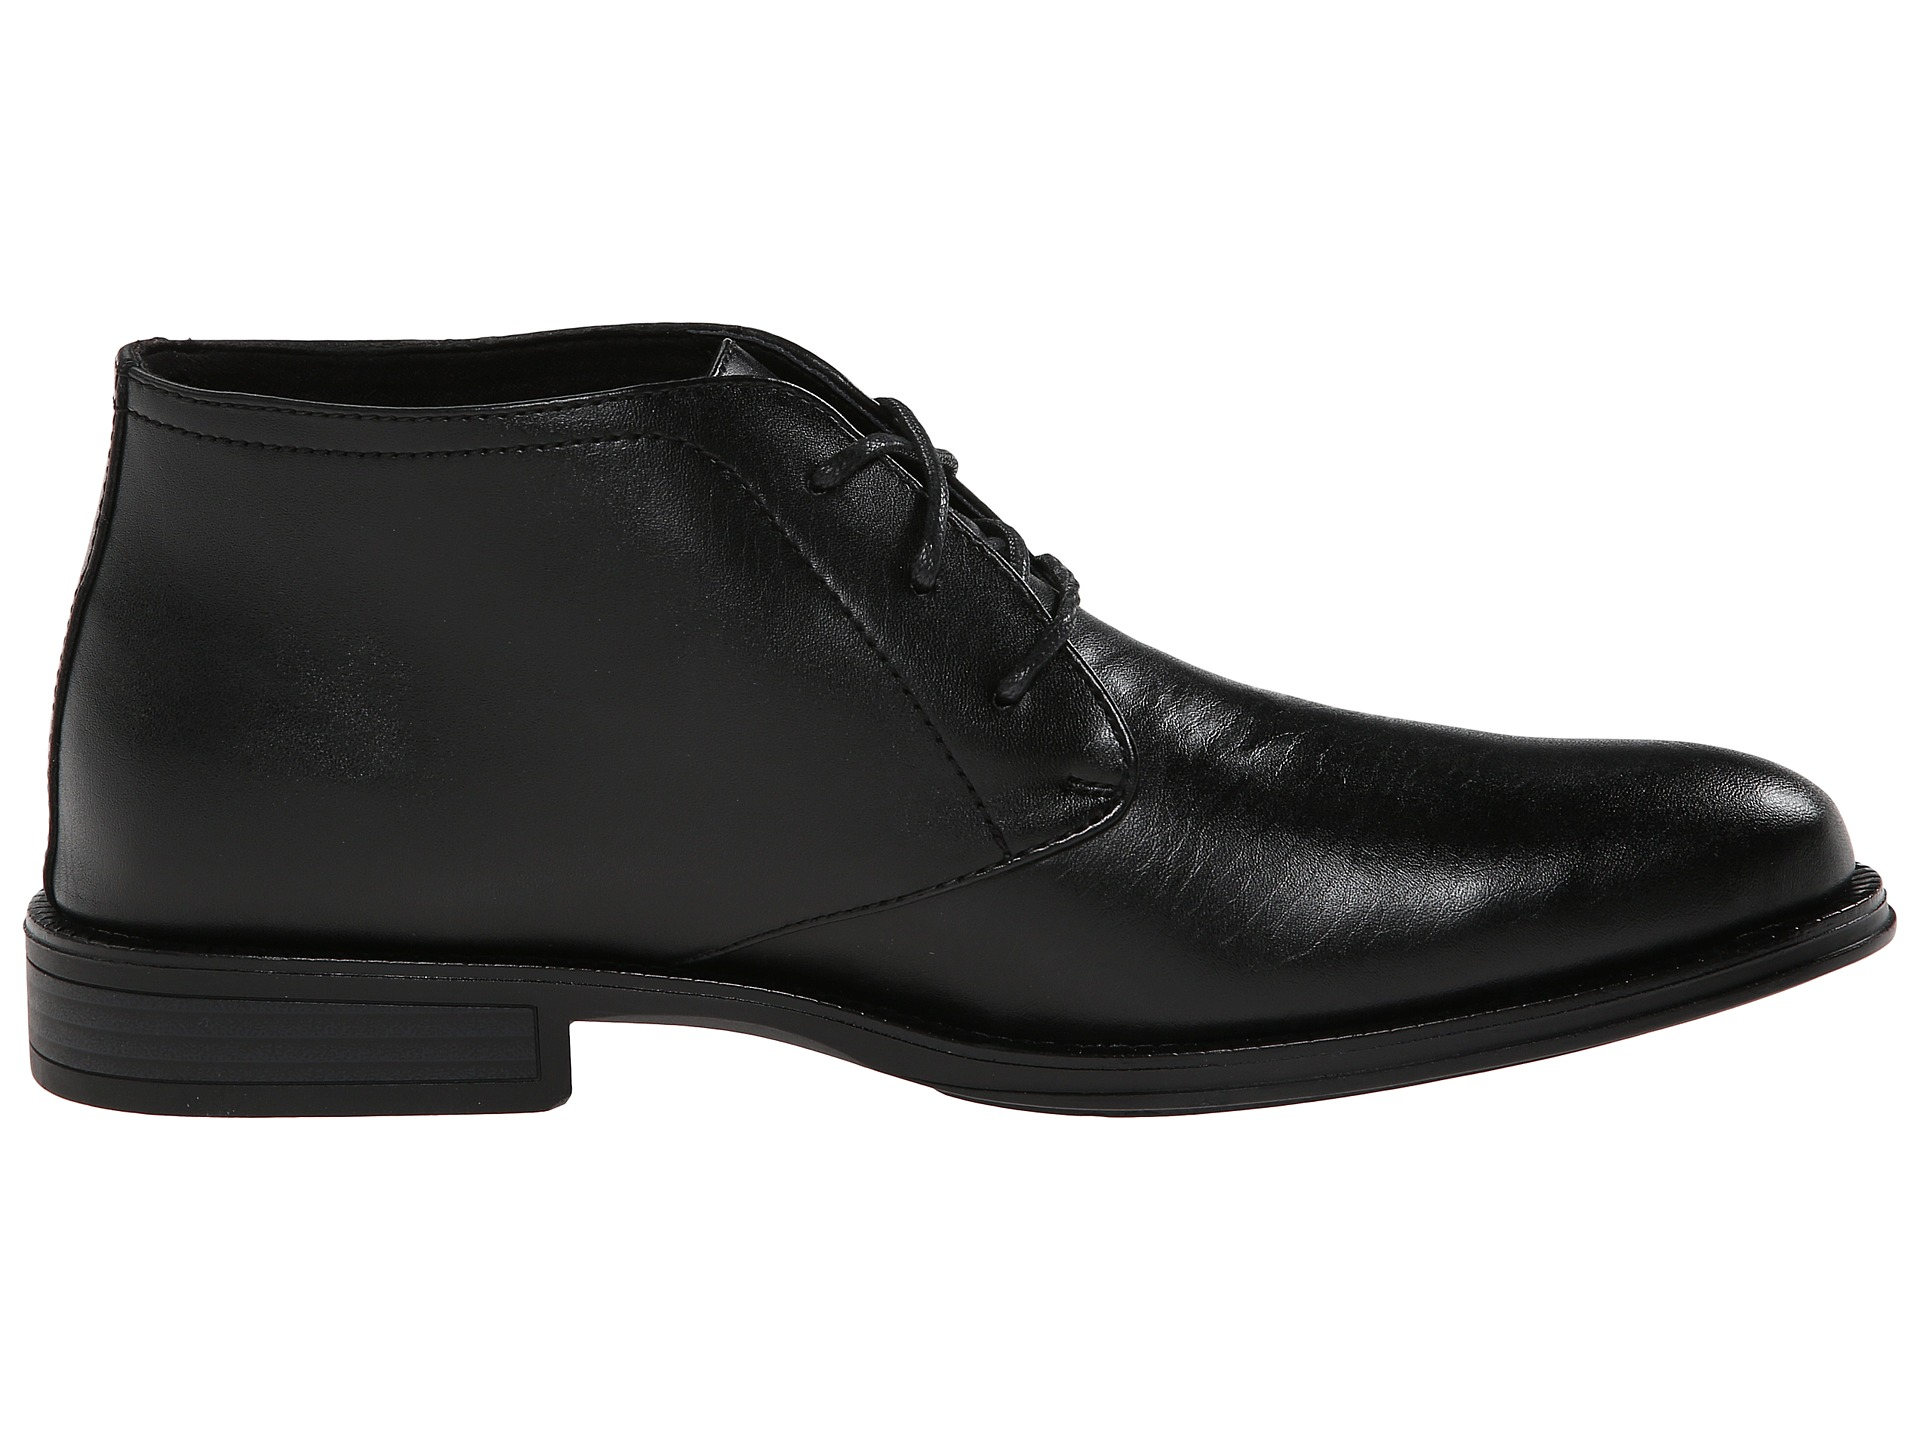 Shoes With Lace Up Closure Mean